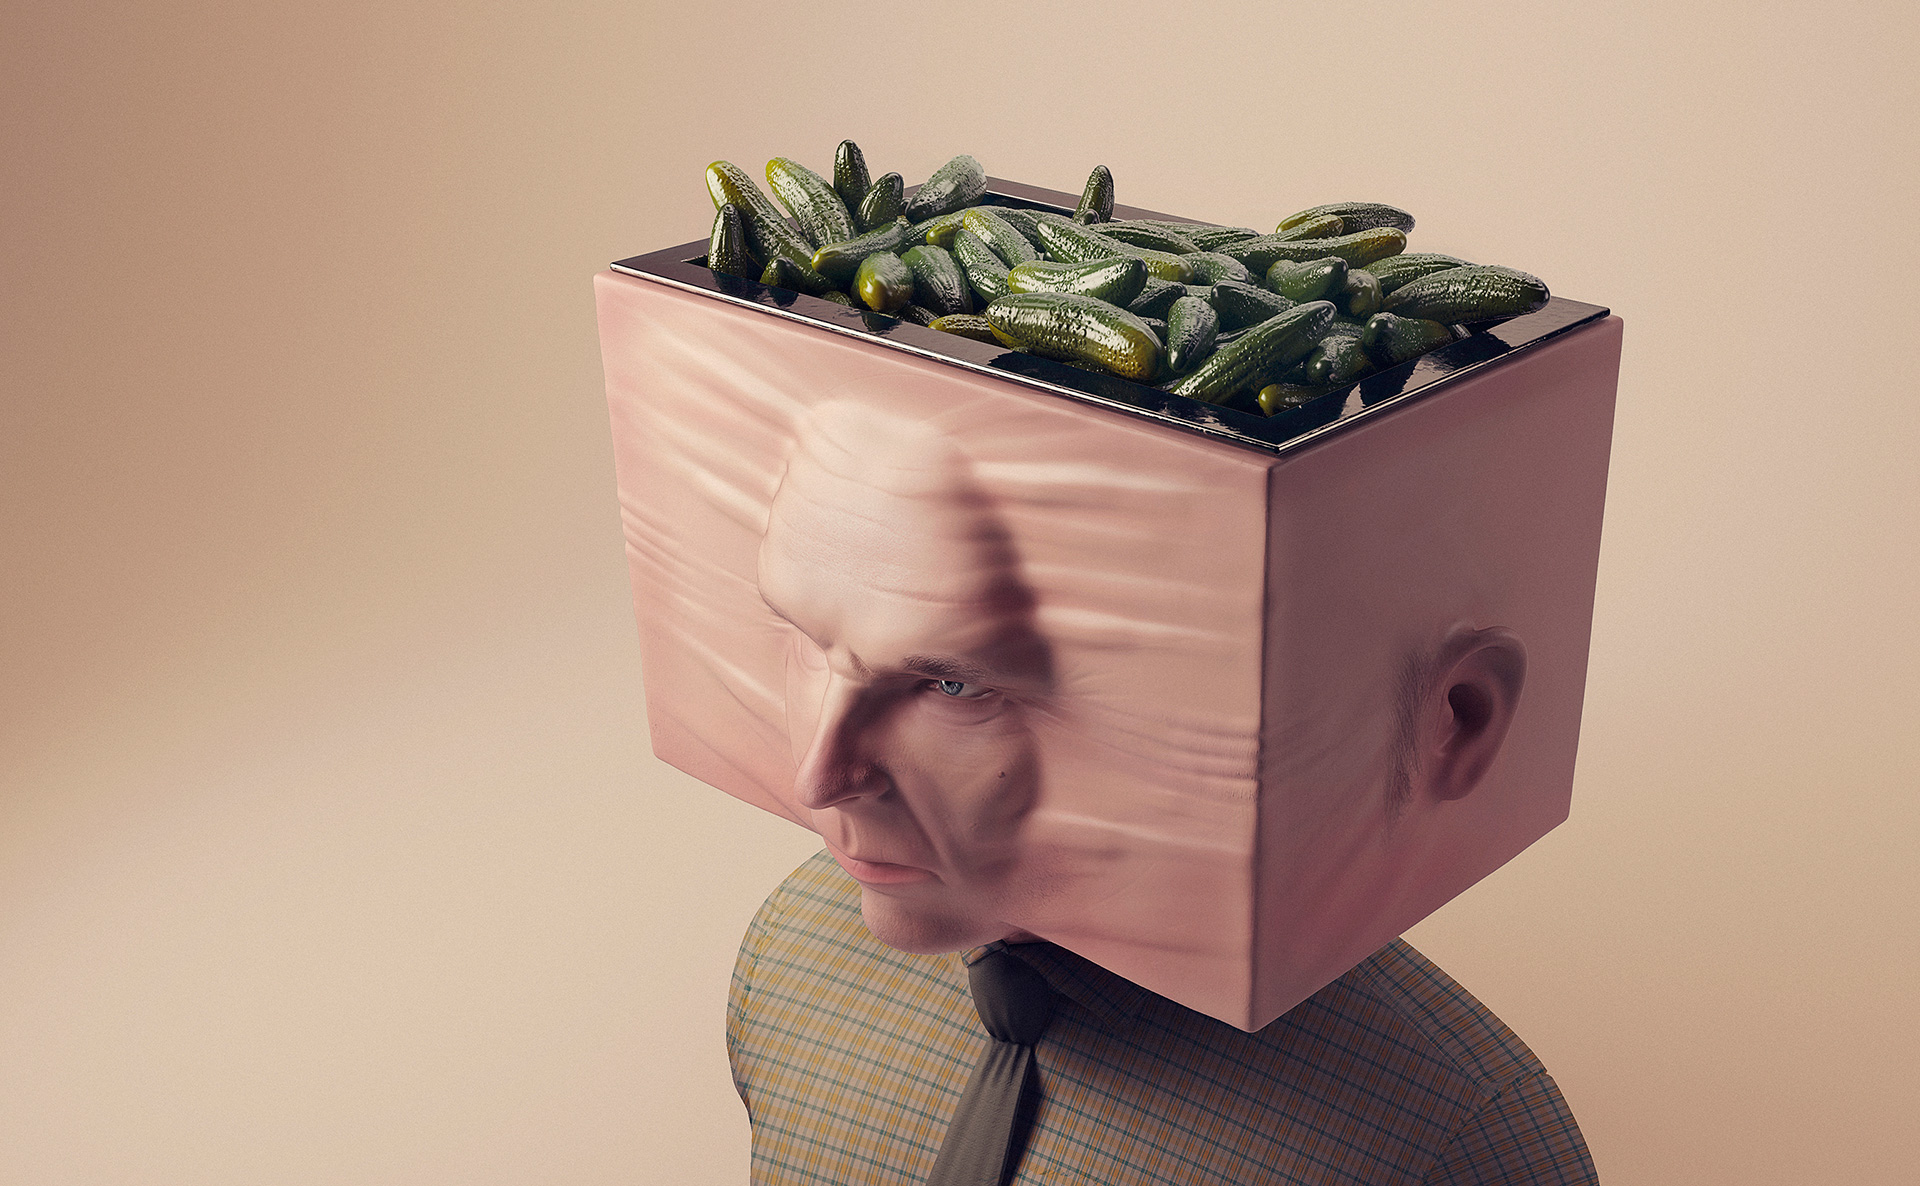 1_Pickle_heads_ok_diseno_cgi_jorge_gago